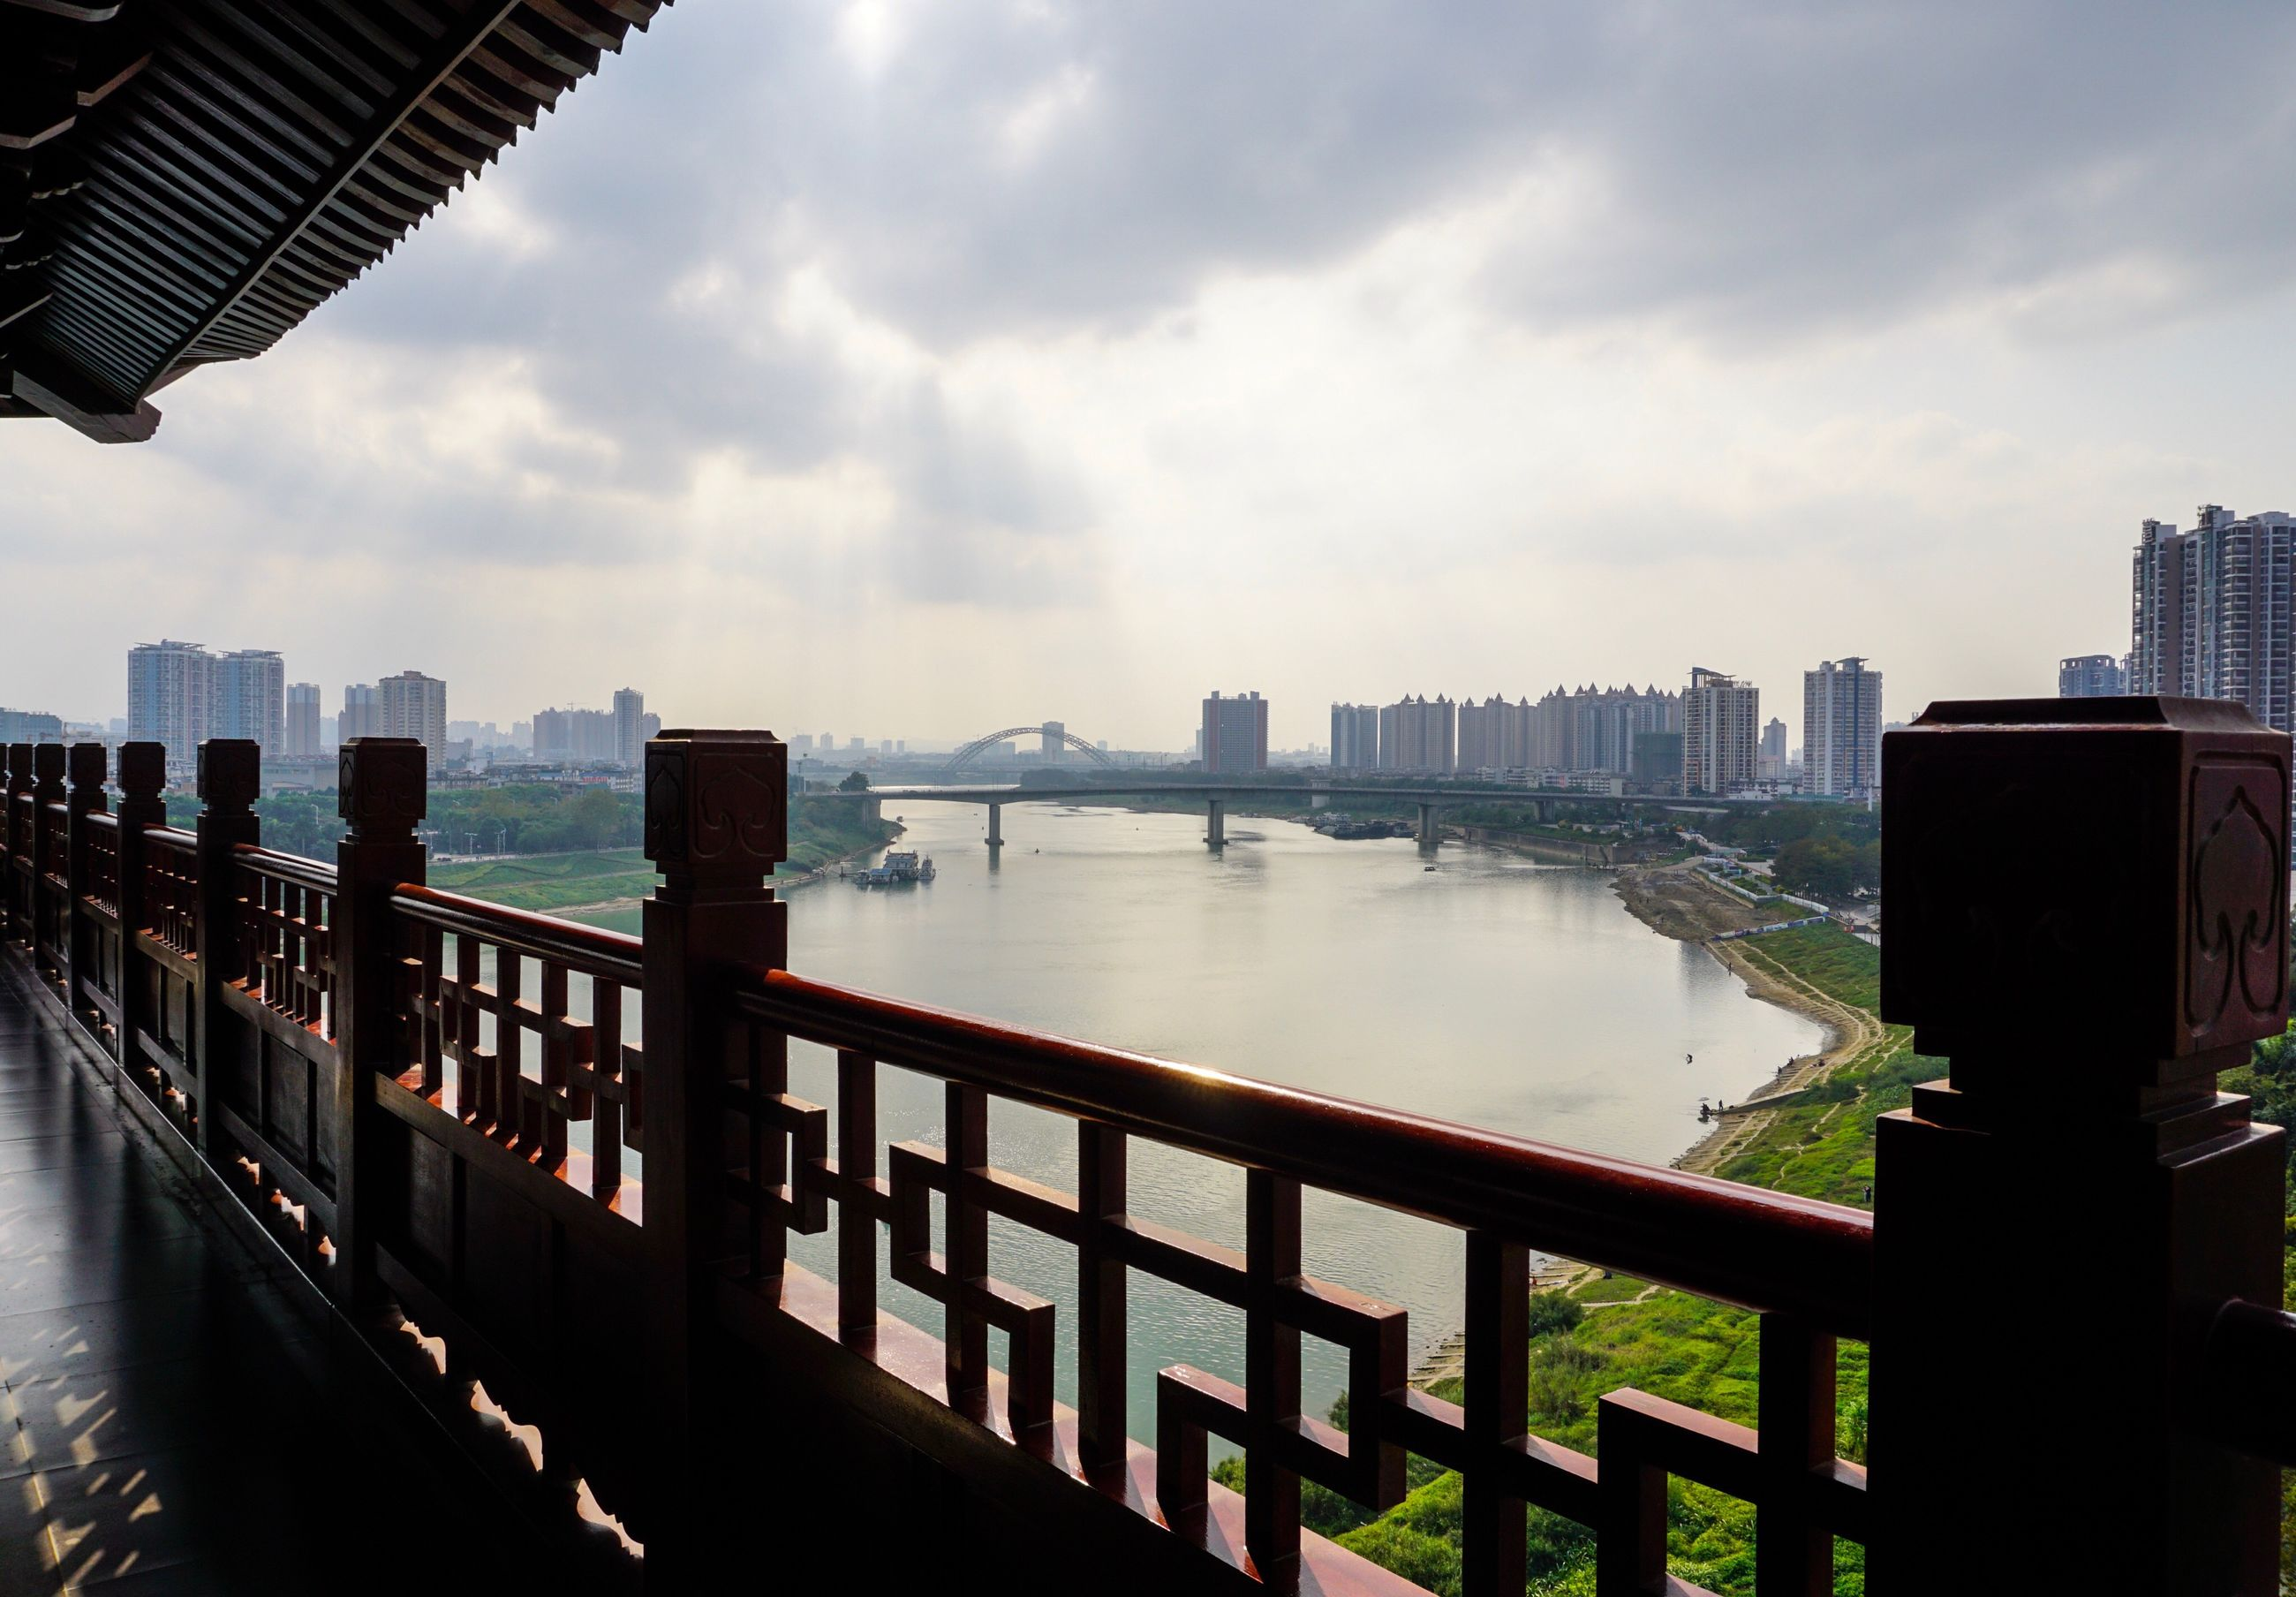 water, railing, city, river, architecture, building exterior, built structure, sky, connection, bridge, cloud, bridge - man made structure, cityscape, sea, cloud - sky, engineering, outdoors, day, city life, skyscraper, tranquility, waterfront, scenics, tranquil scene, modern, tourism, no people, urban skyline